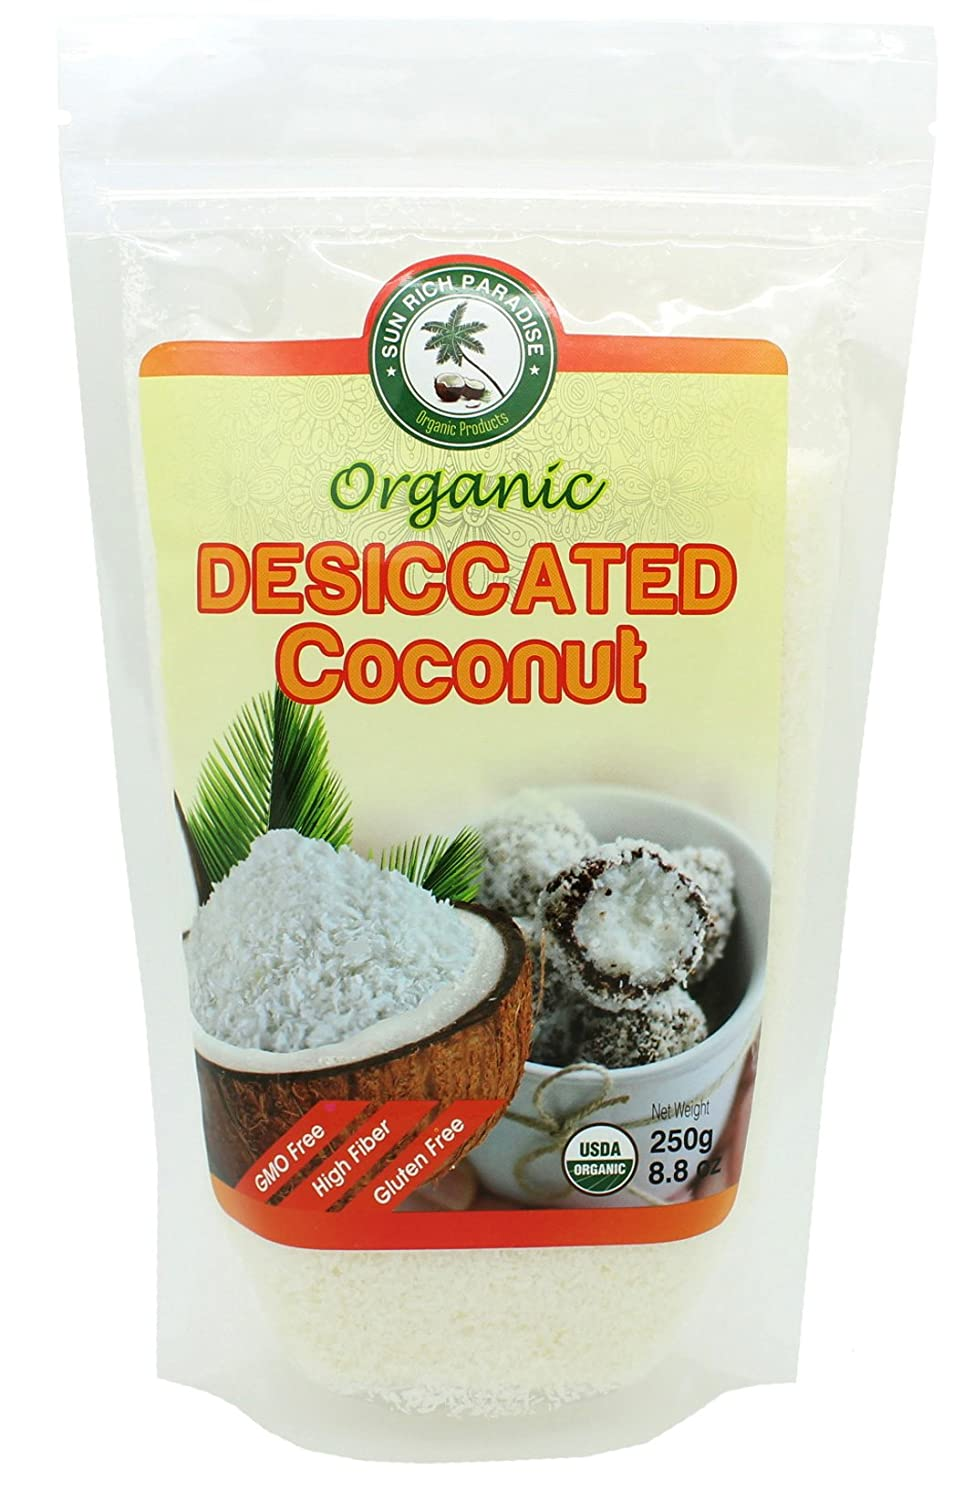 Organic Premium Desiccated Coconut by Sun rich, Fine Shredded, Unsweetened, Gluten Free, All Natural, Non-GMO 8.8 oz - BONUS ebook included